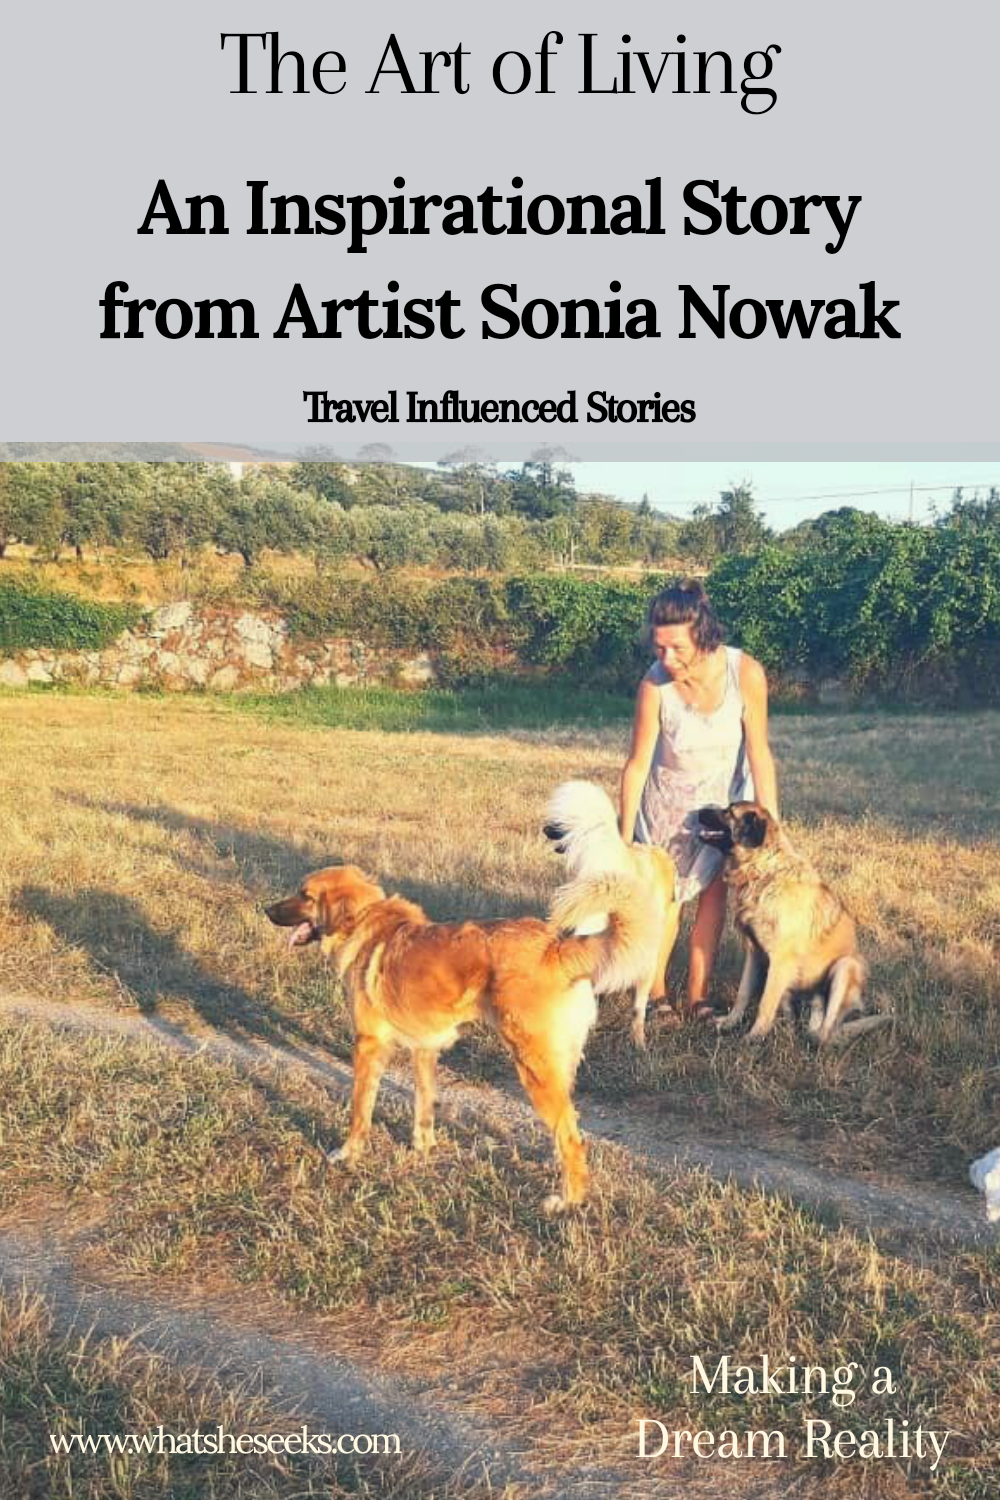 Read this inspirational story from artist, Sonia Nowak who followed her heart and set up a new life in rural Portugal. The Art of Living is a story of determination and turning a dream into reality. A series of incredible stories from my travel family who i have met along the way. #whatsheseeks #traveltribeposts #travelfamily #intuitiveartists #portugalartists